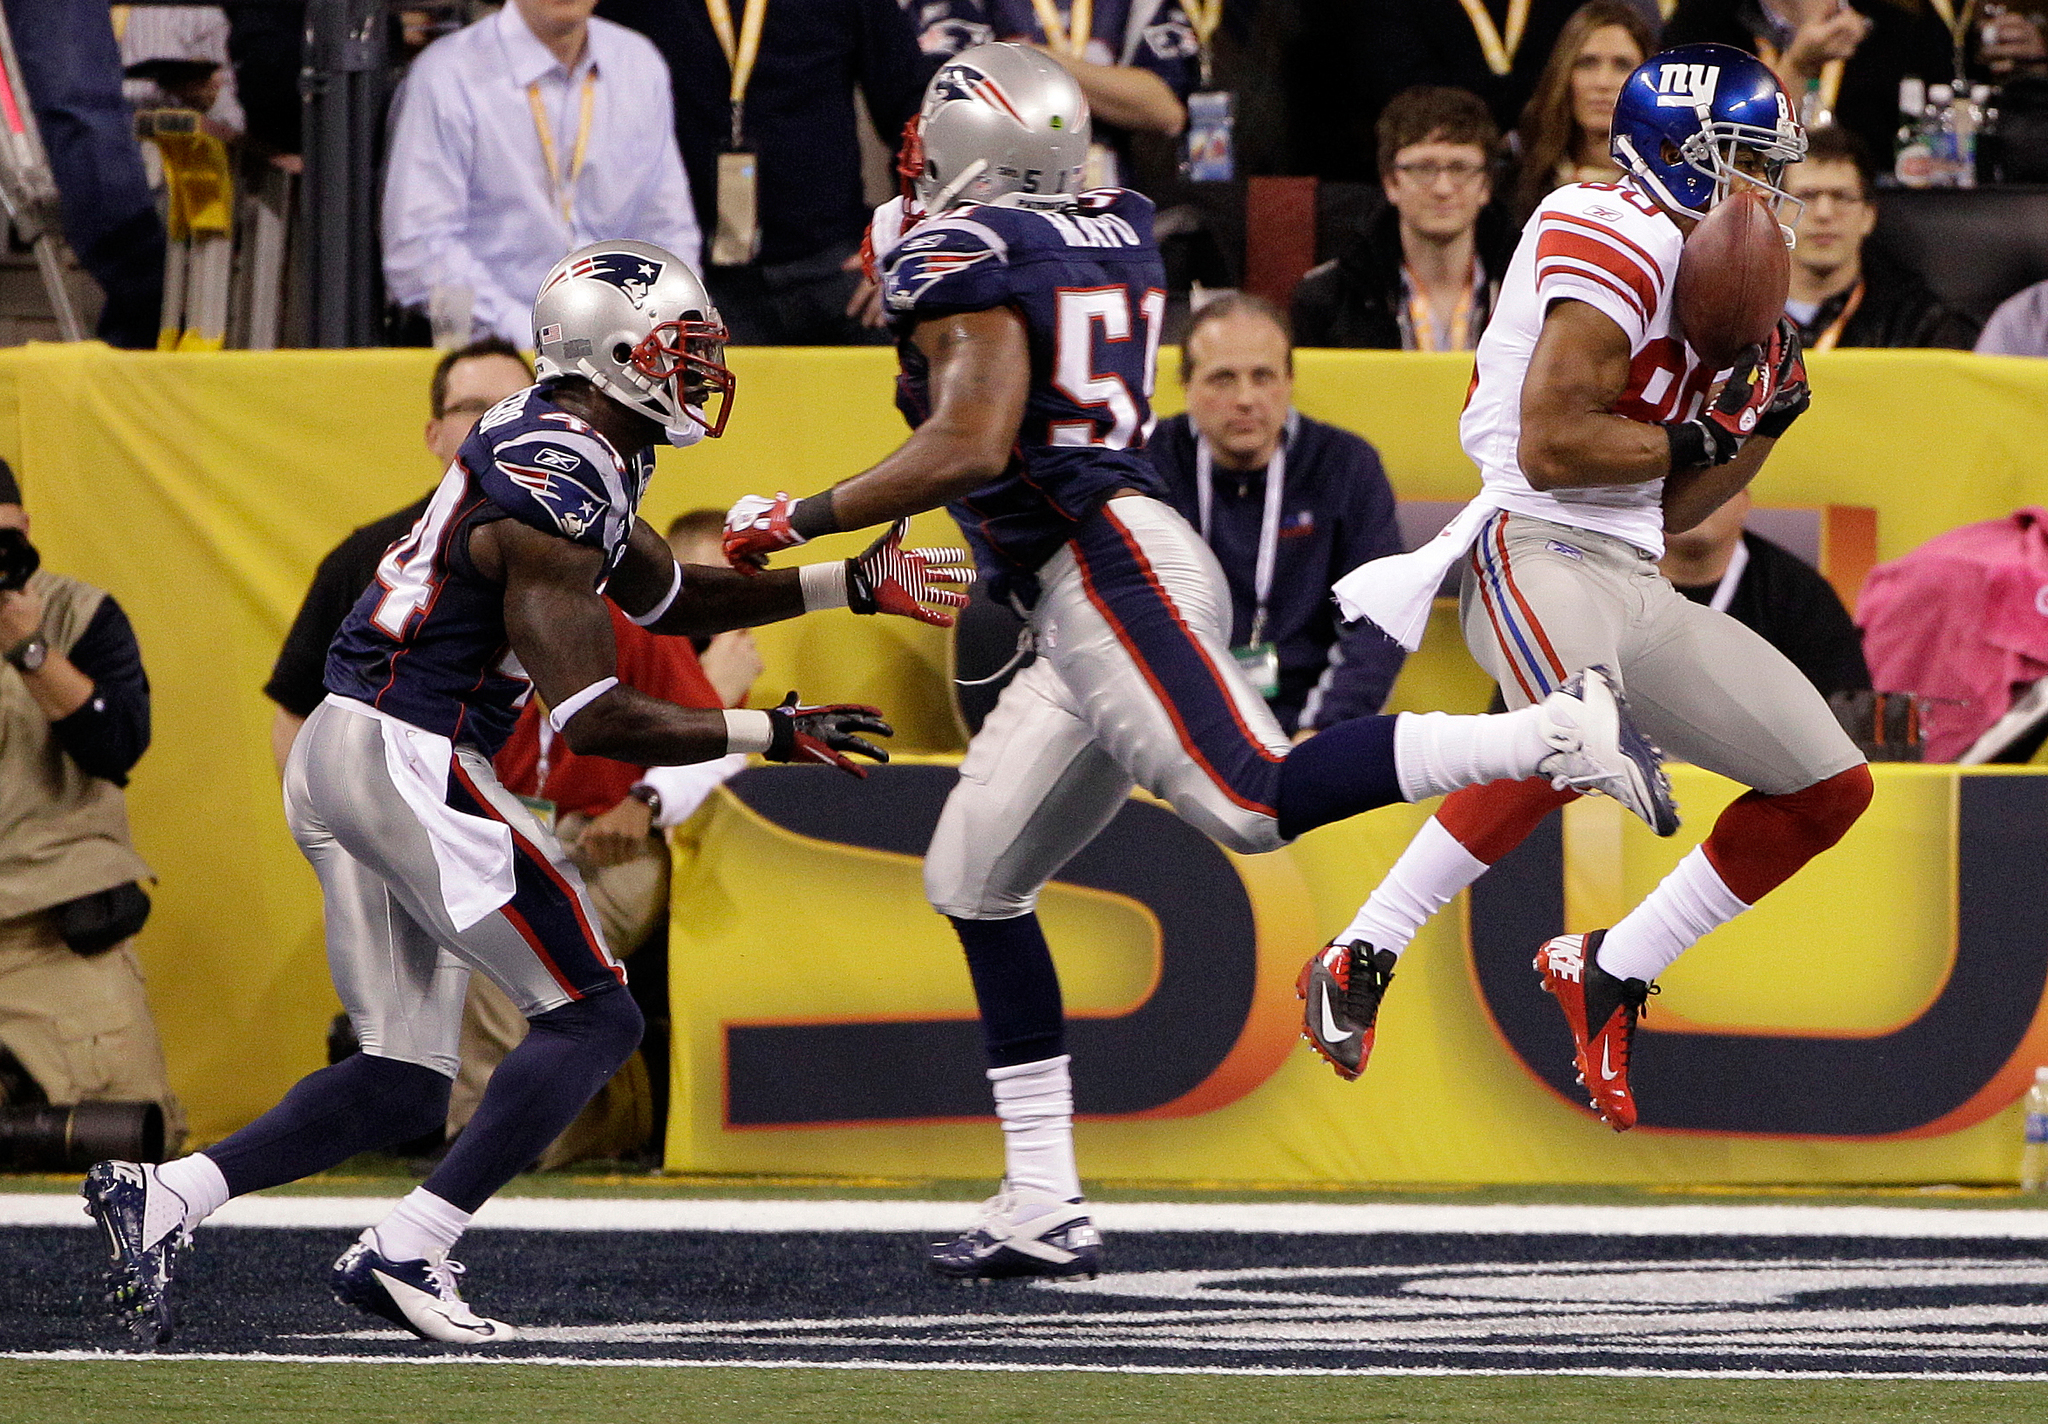 El touchdown de Cruz en el Super Bowl XLVI.